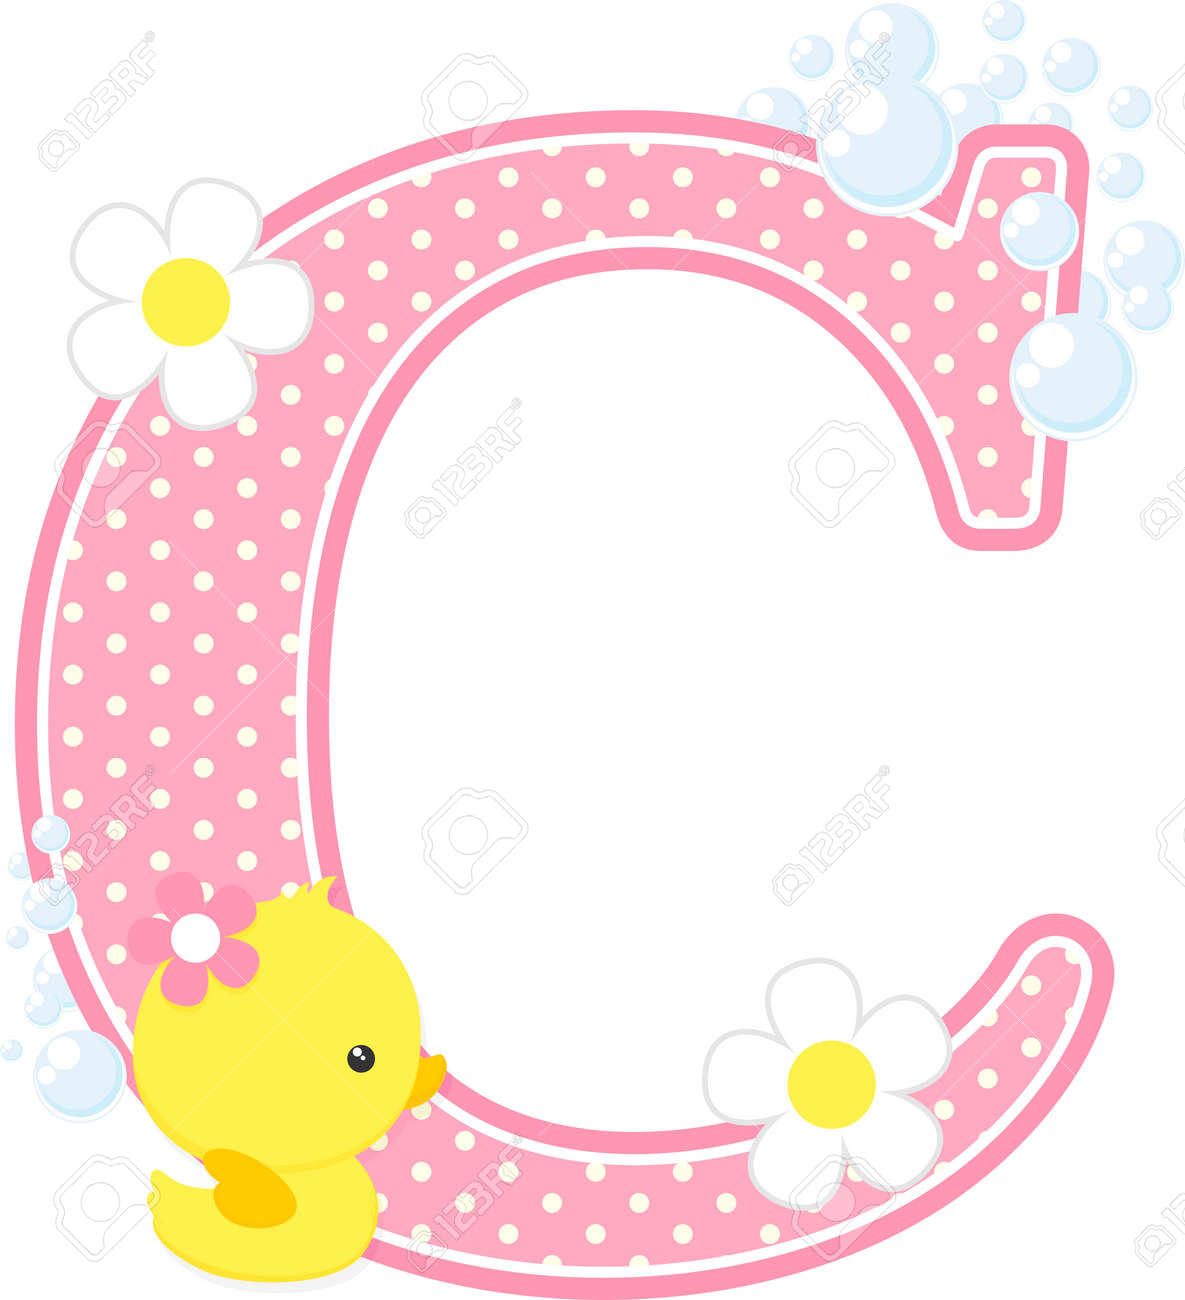 pink dotted letter c initial with flowers and bubbles design royalty